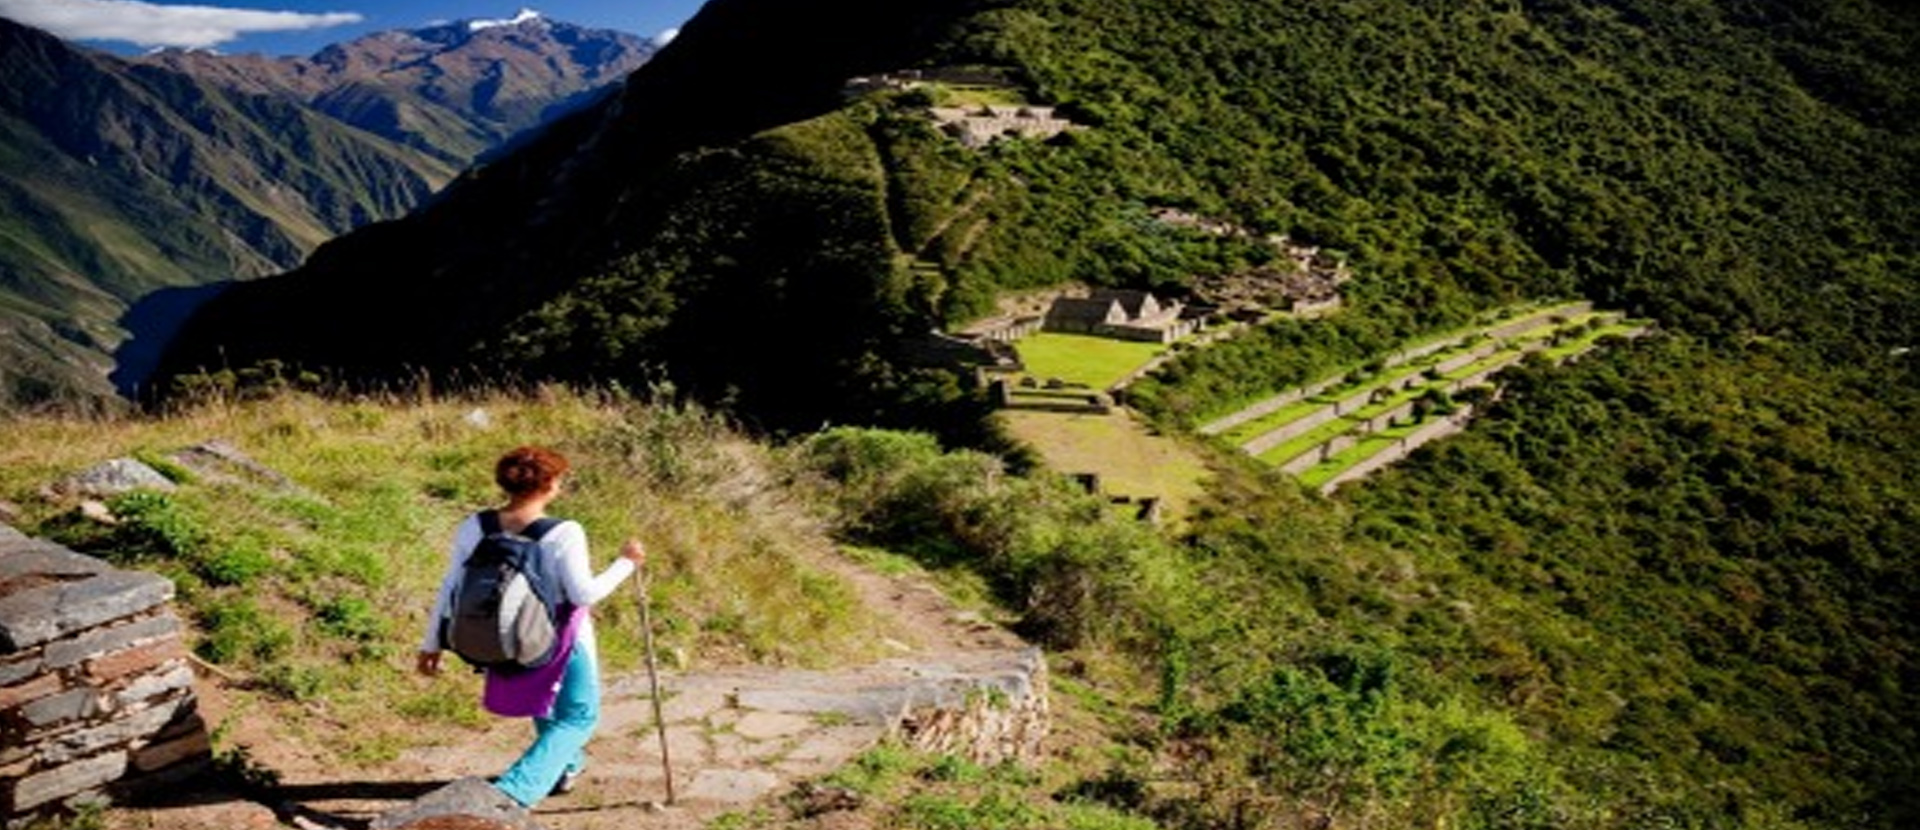 Reserve of Choquequirao Trek (Sacred Valley) 4 days - Inka Jungle Treks